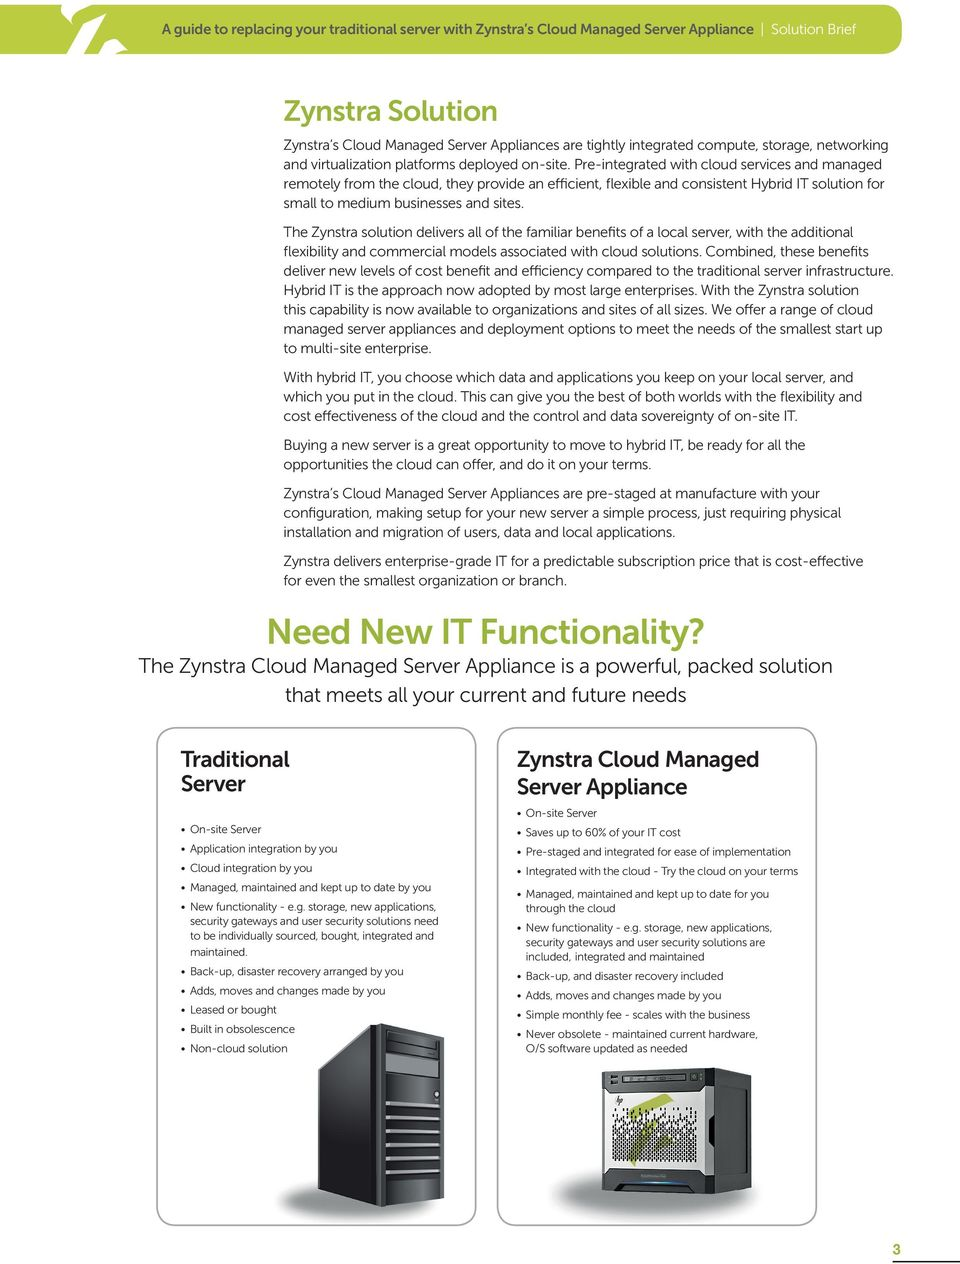 The Zynstra solution delivers all of the familiar benefits of a local server, with the additional flexibility and commercial models associated with cloud solutions.